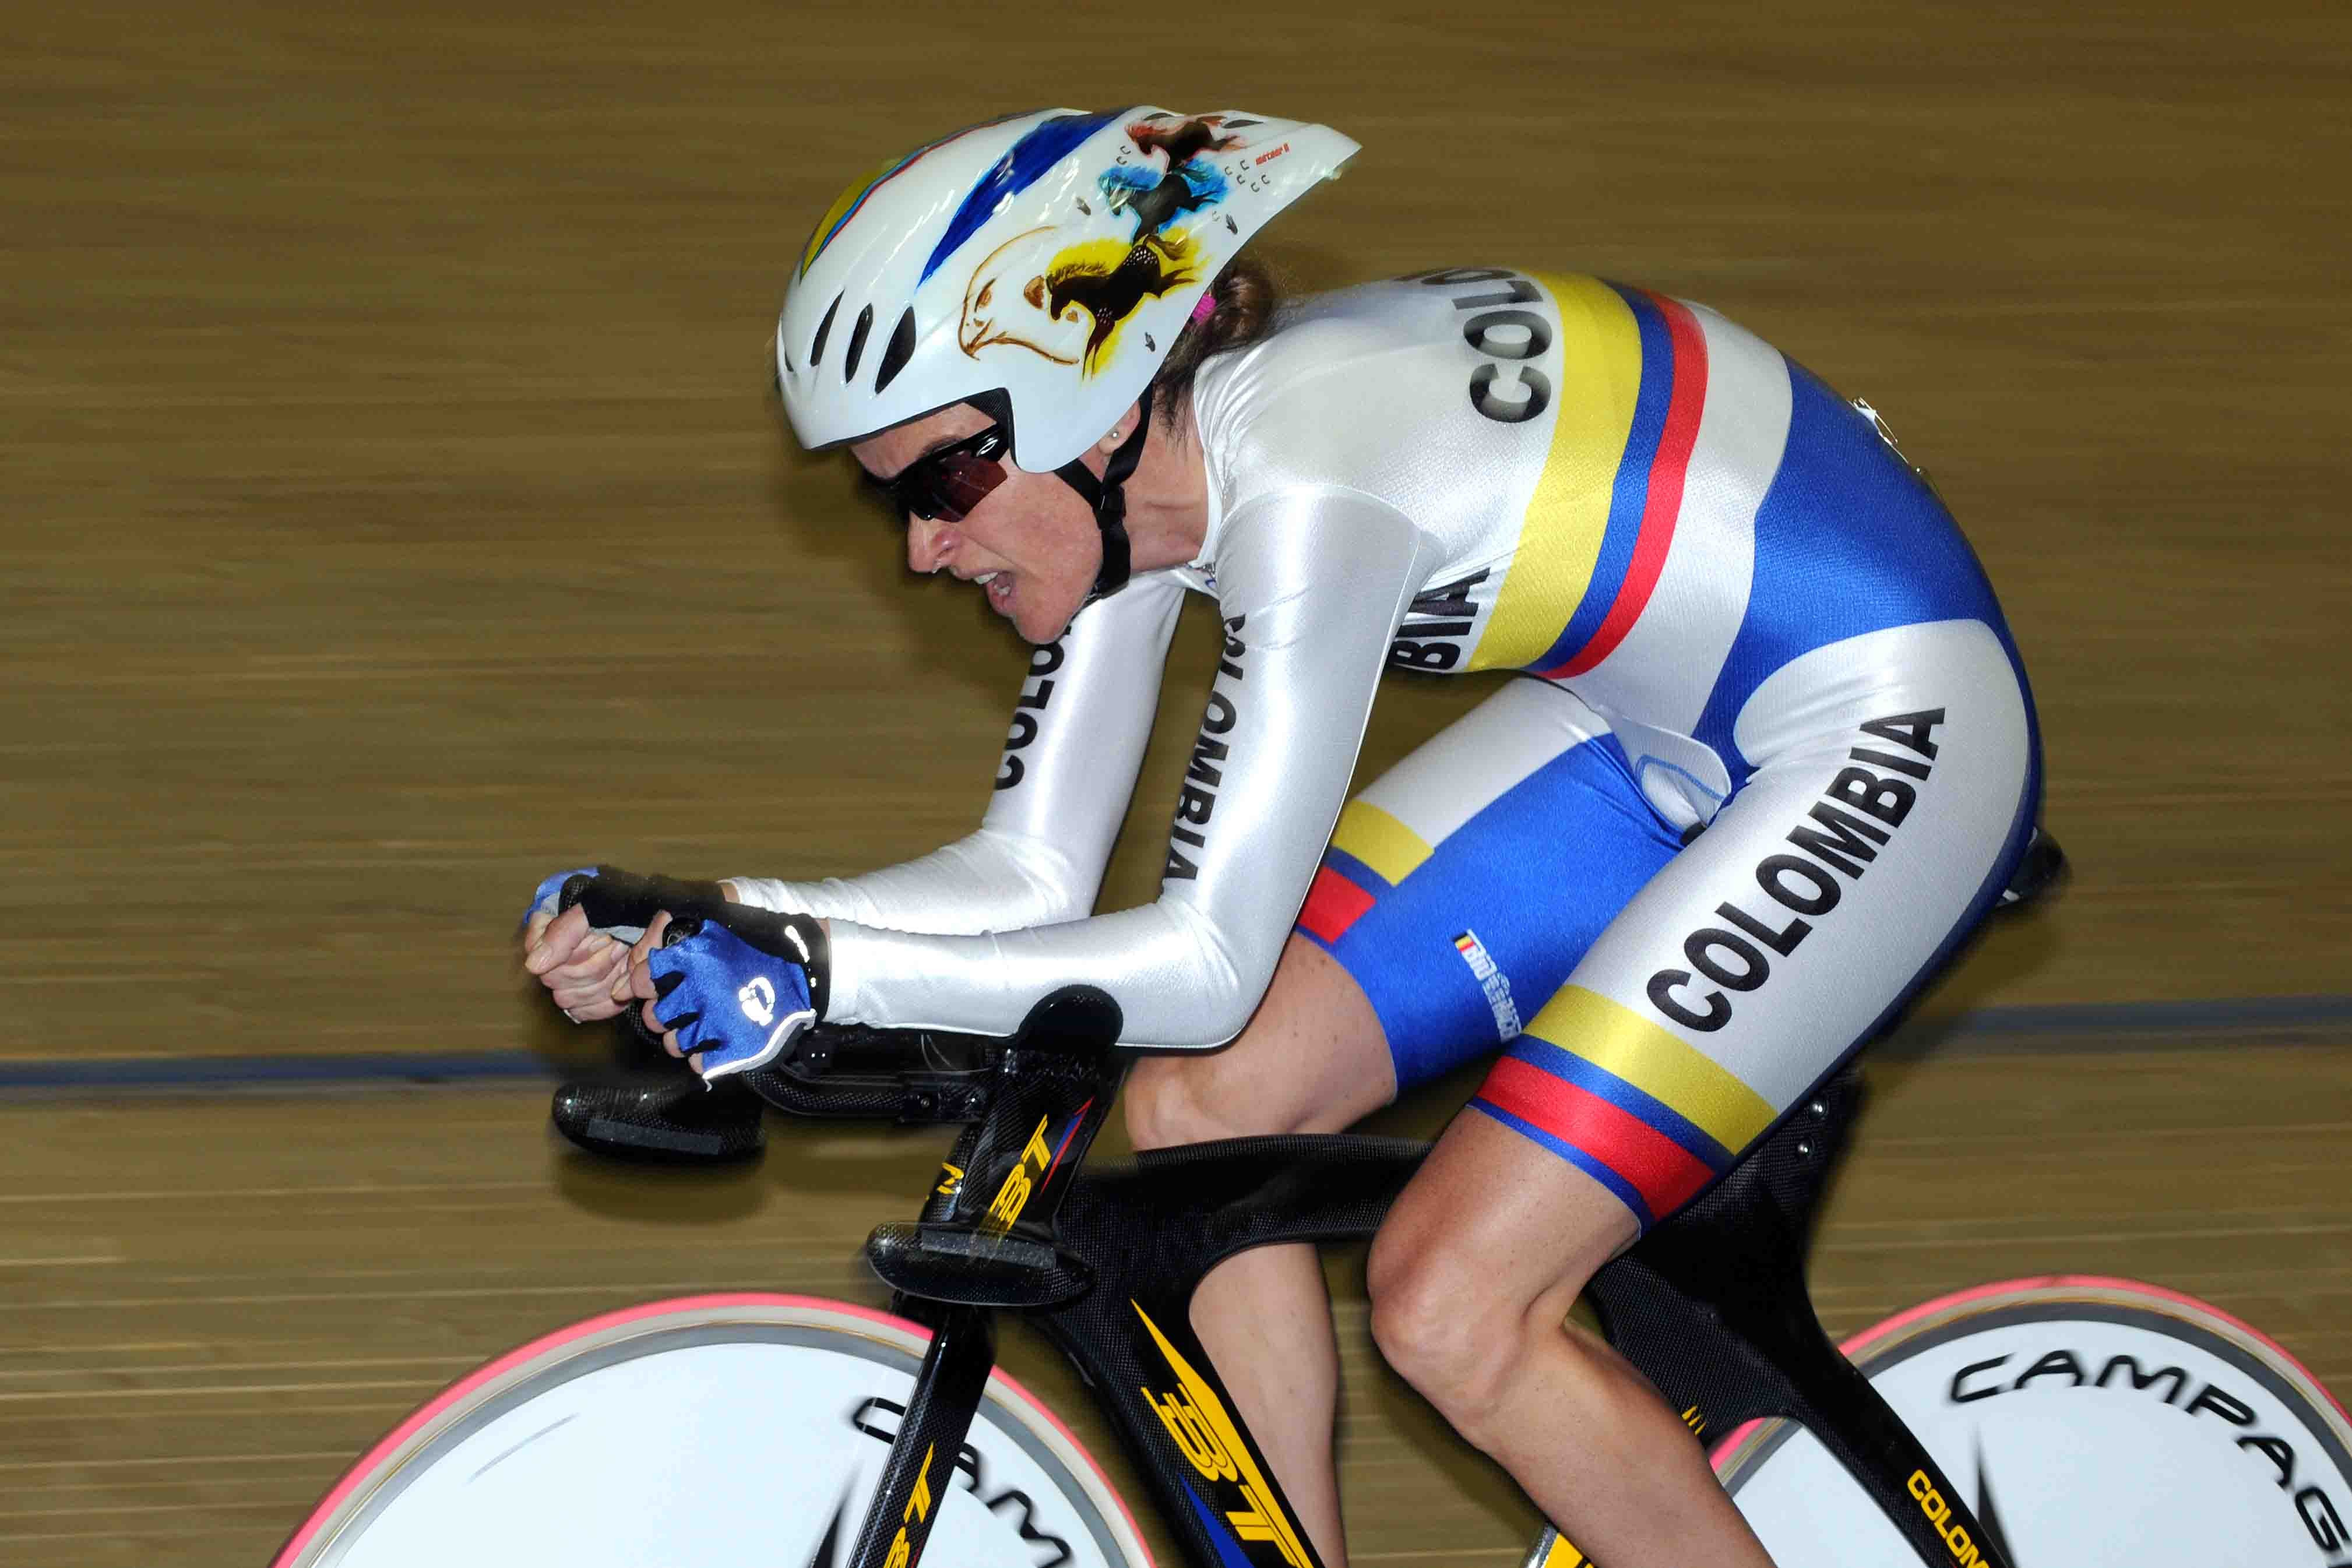 200820UCI20Track20Cycling20World20Championships20Day20220evening20002-2bd069d